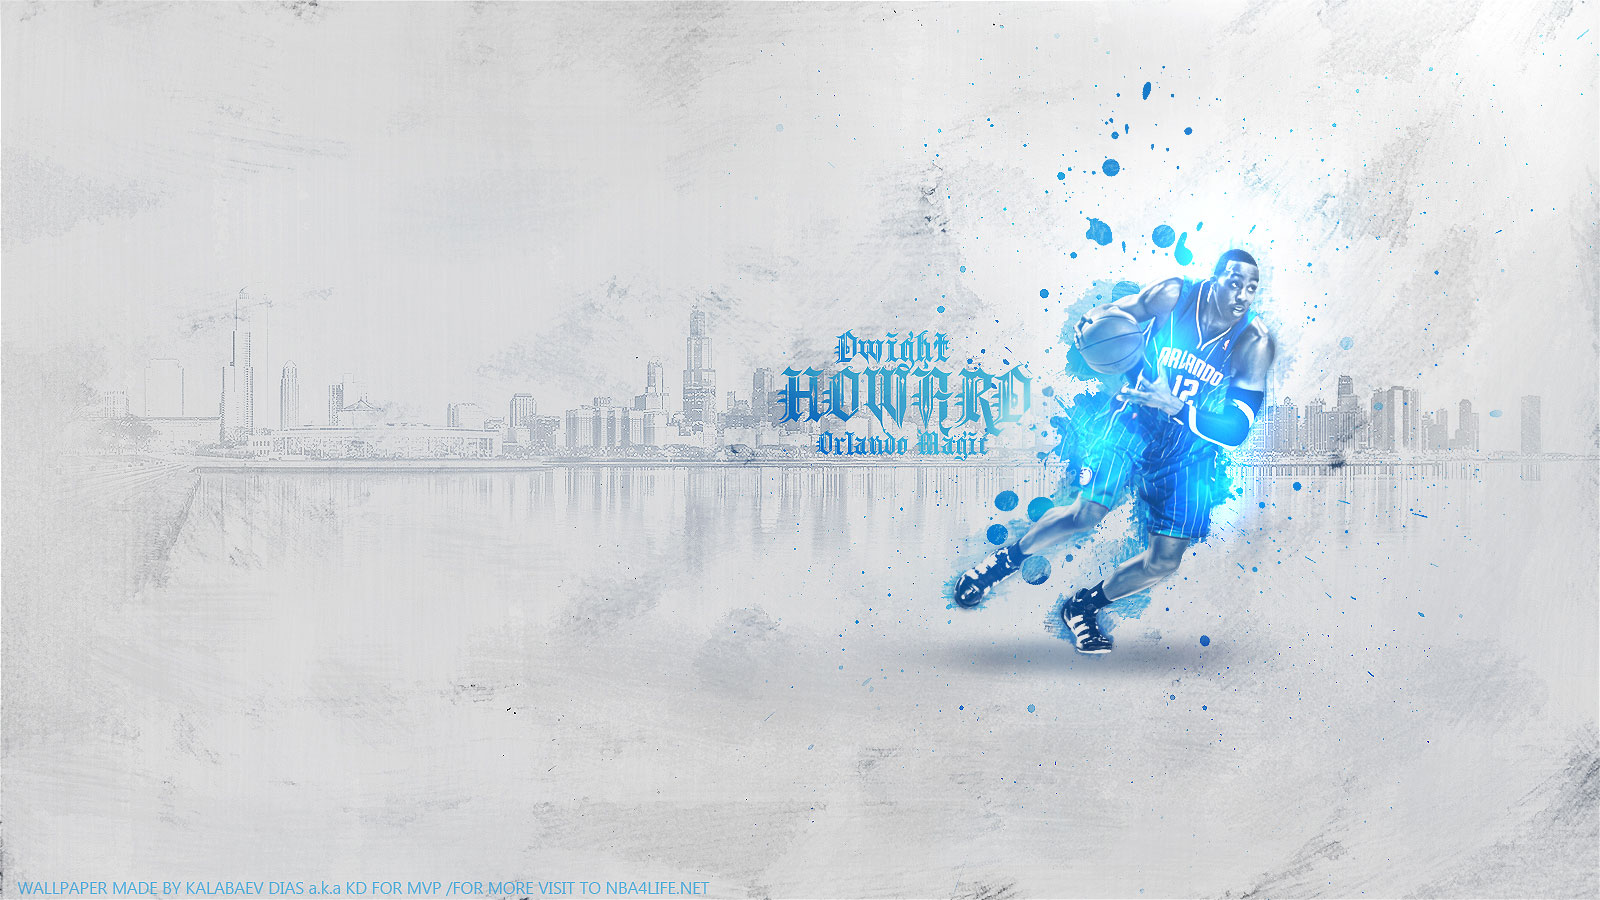 http://2.bp.blogspot.com/-hNHzx34glVc/TmSeMdSFVXI/AAAAAAAAD7k/37bSGnJdYL0/s1600/Dwight-Howard-Magic-1600x900-Wallpaper-BasketWallpapers.com-.jpg